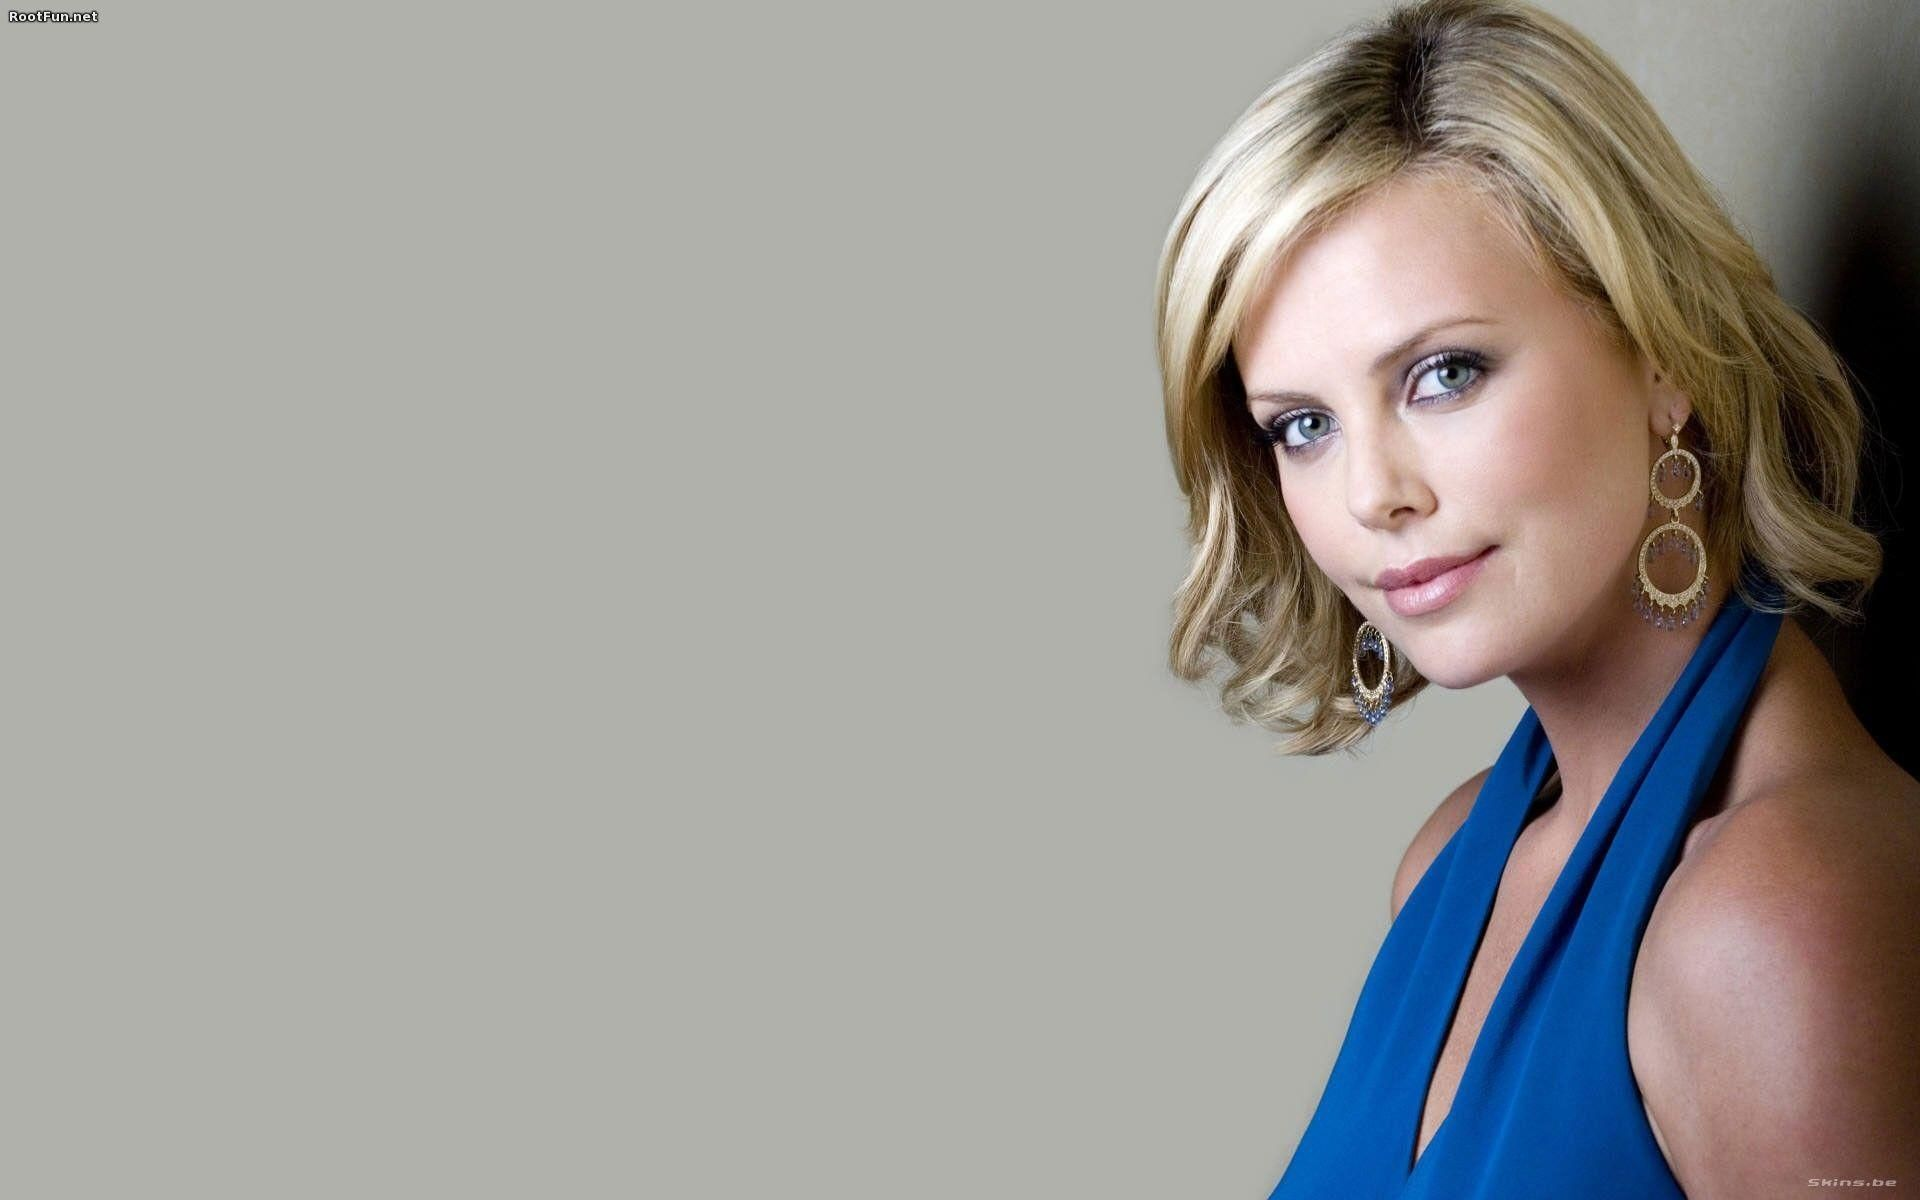 Pin by Khalilahmadkhan on Charlize Theron Full HD